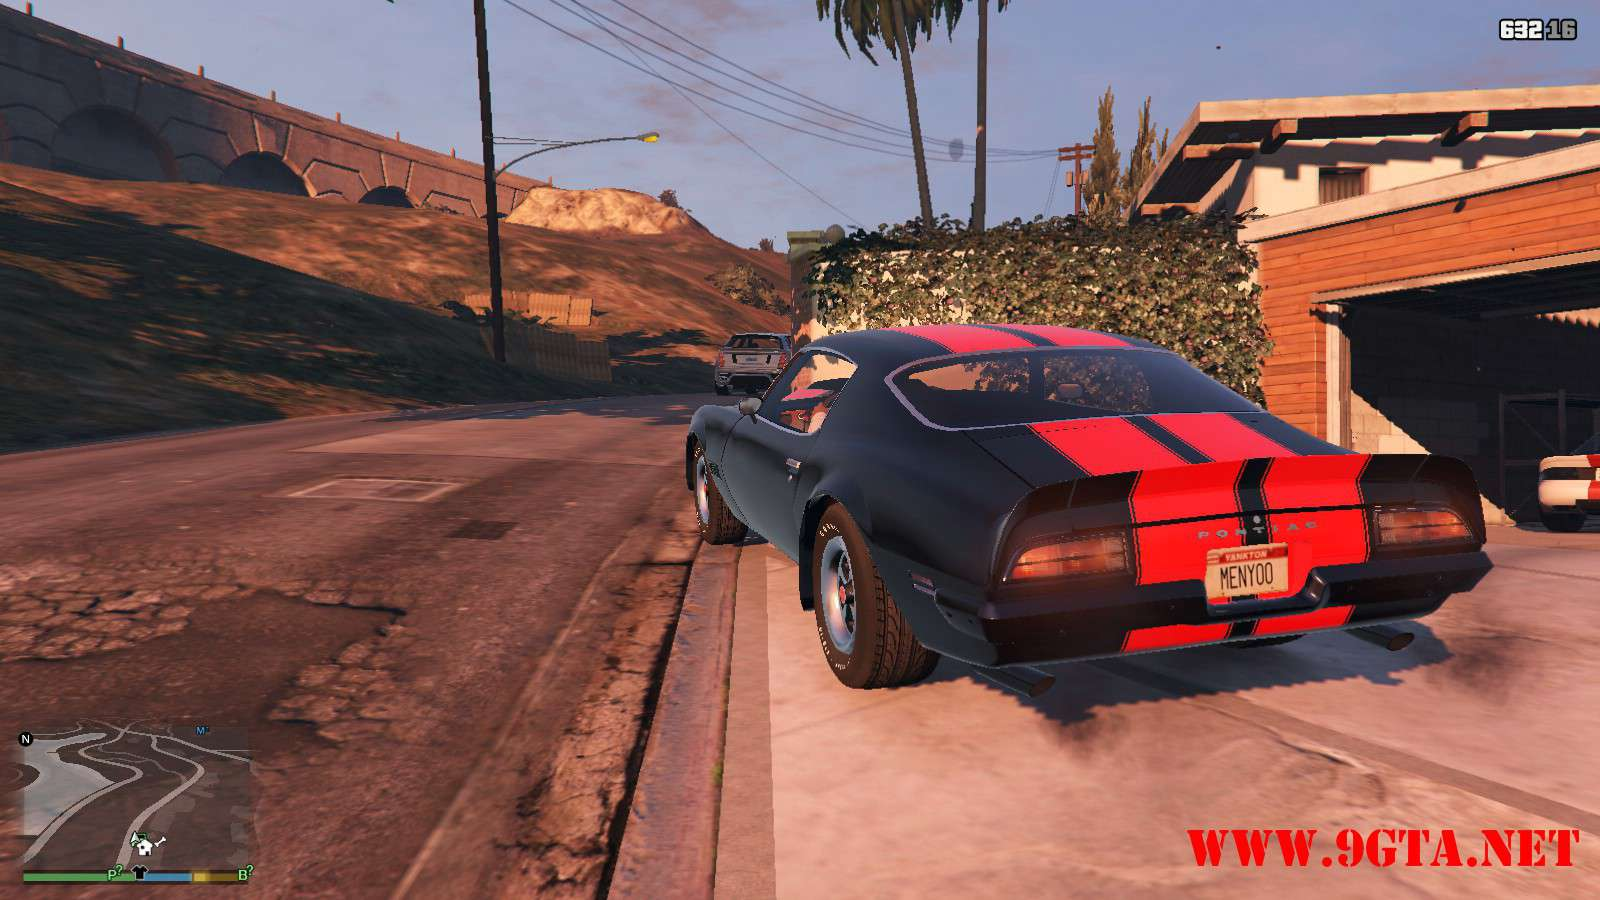 1970 Pontiac Firebird v1.0 GTA5 Mods (14)